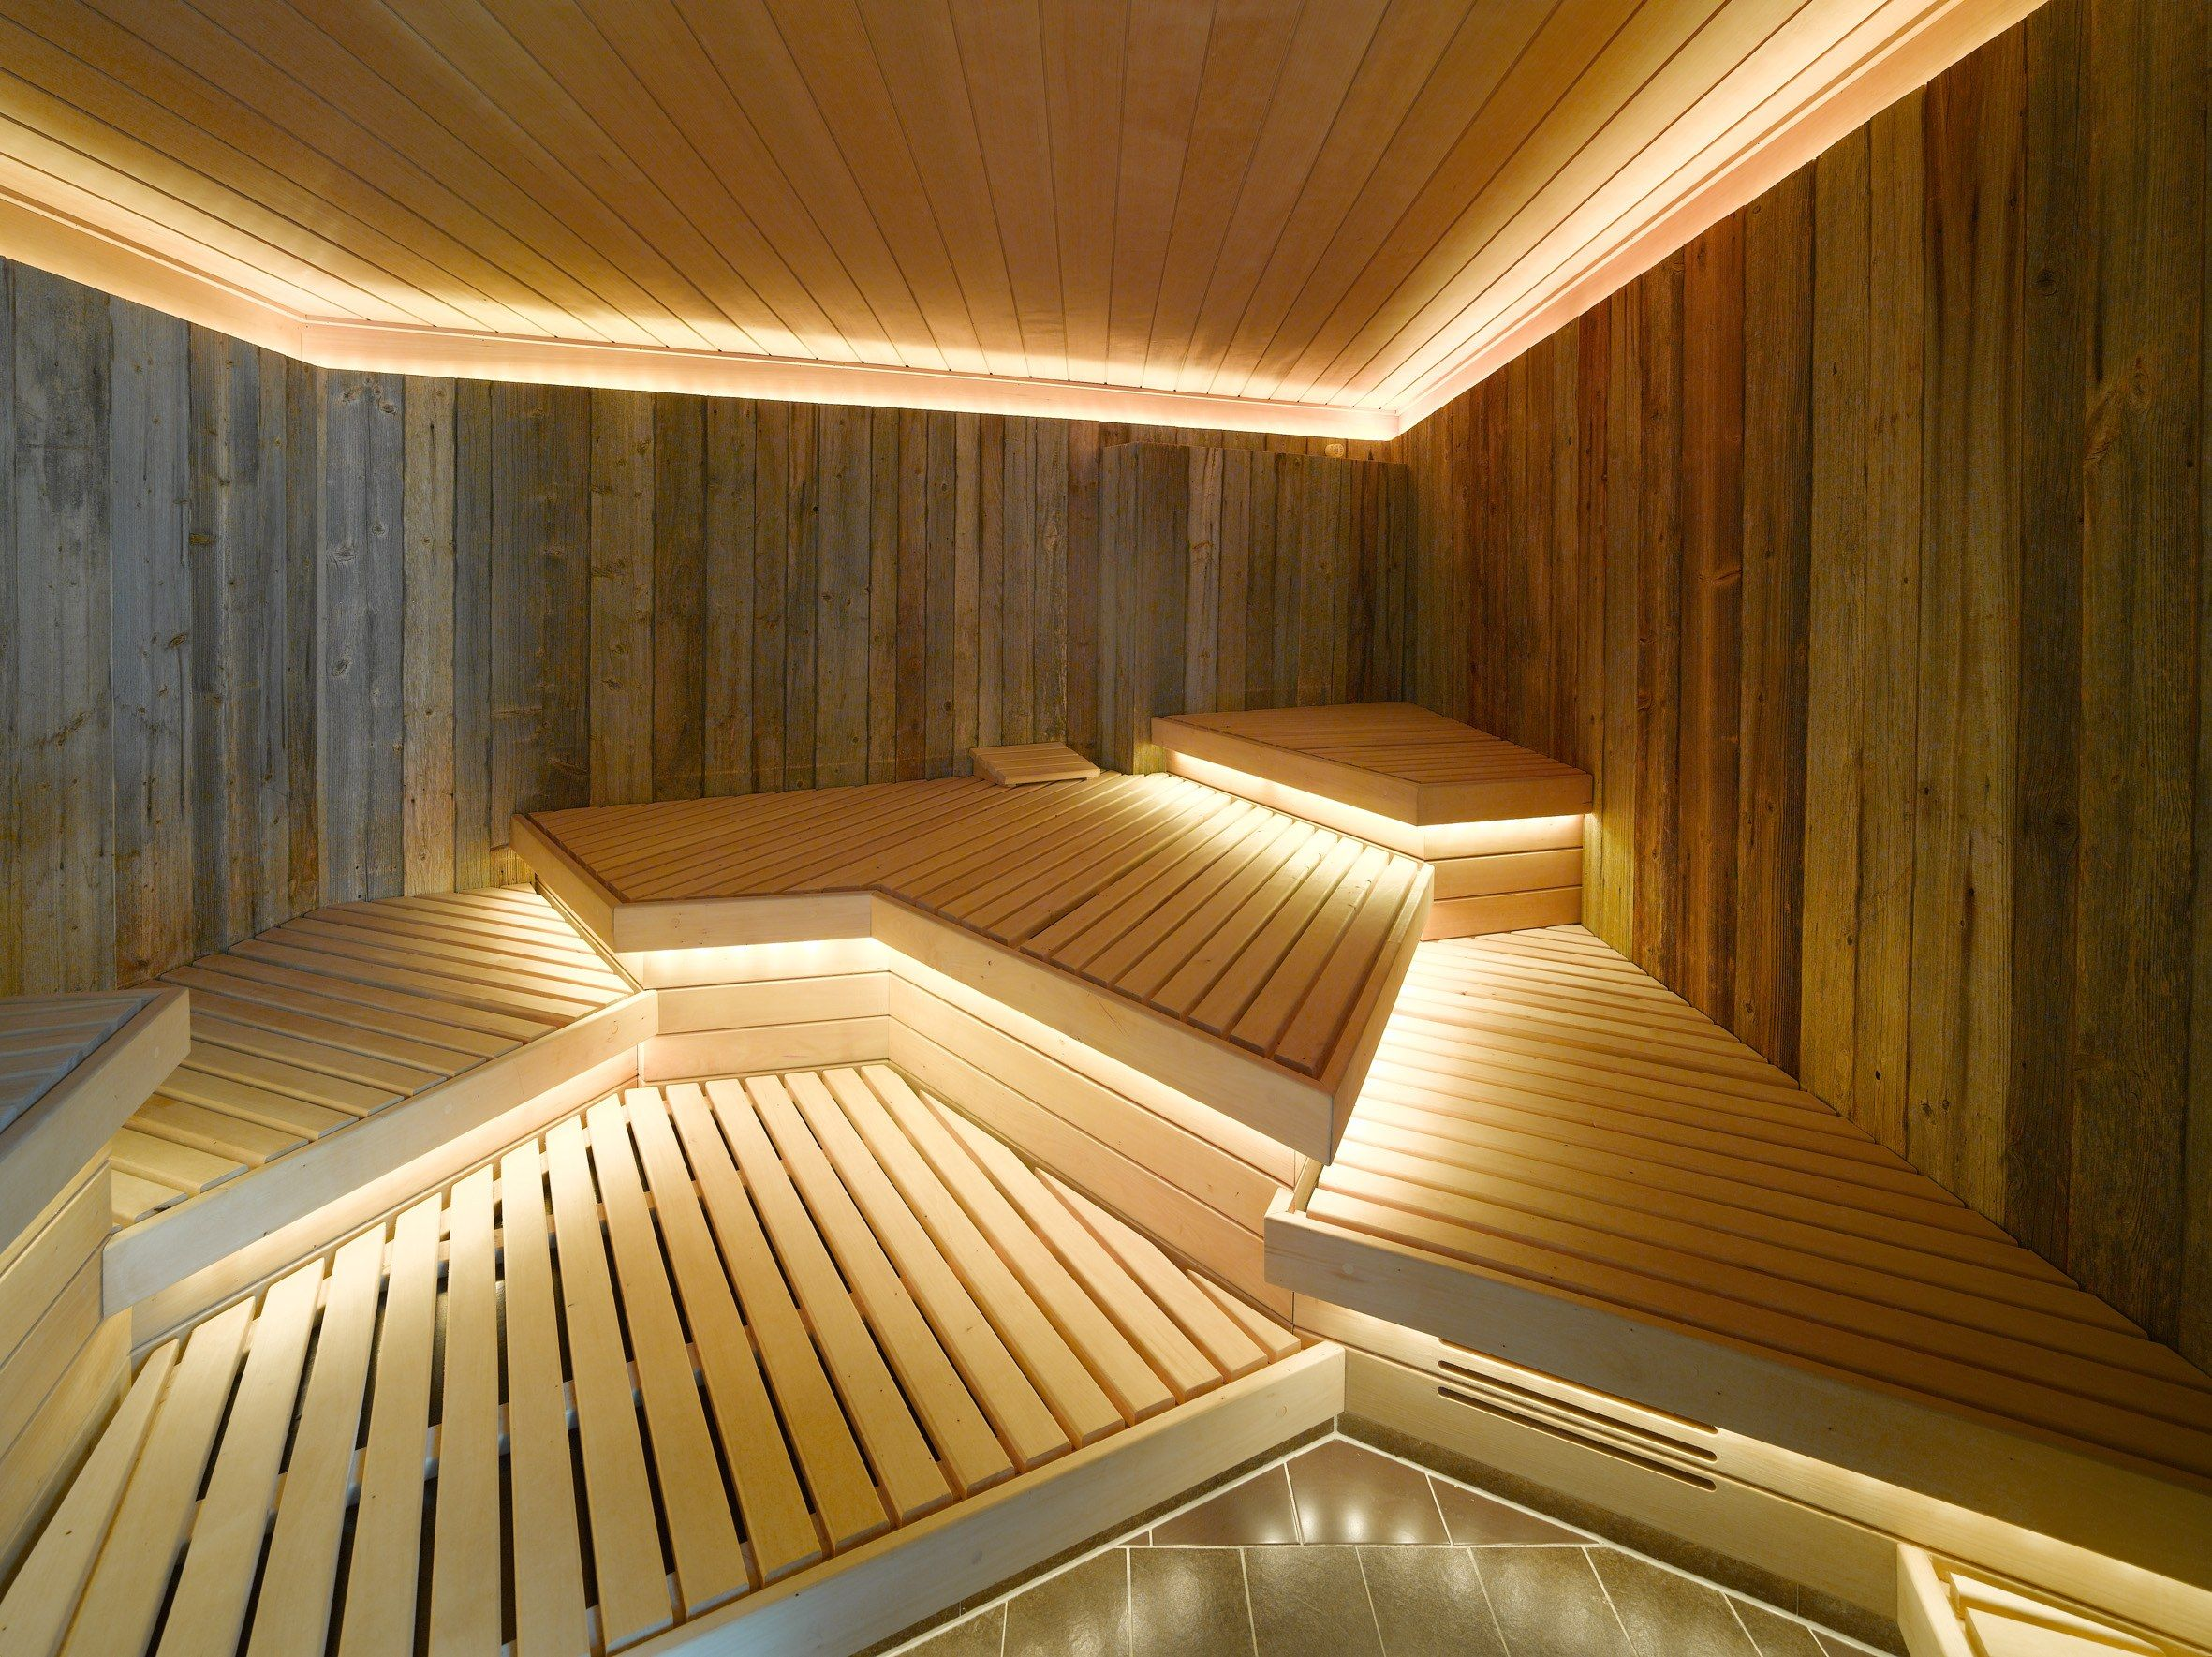 6 Architecturally Stunning Saunas You Need To Visit Next